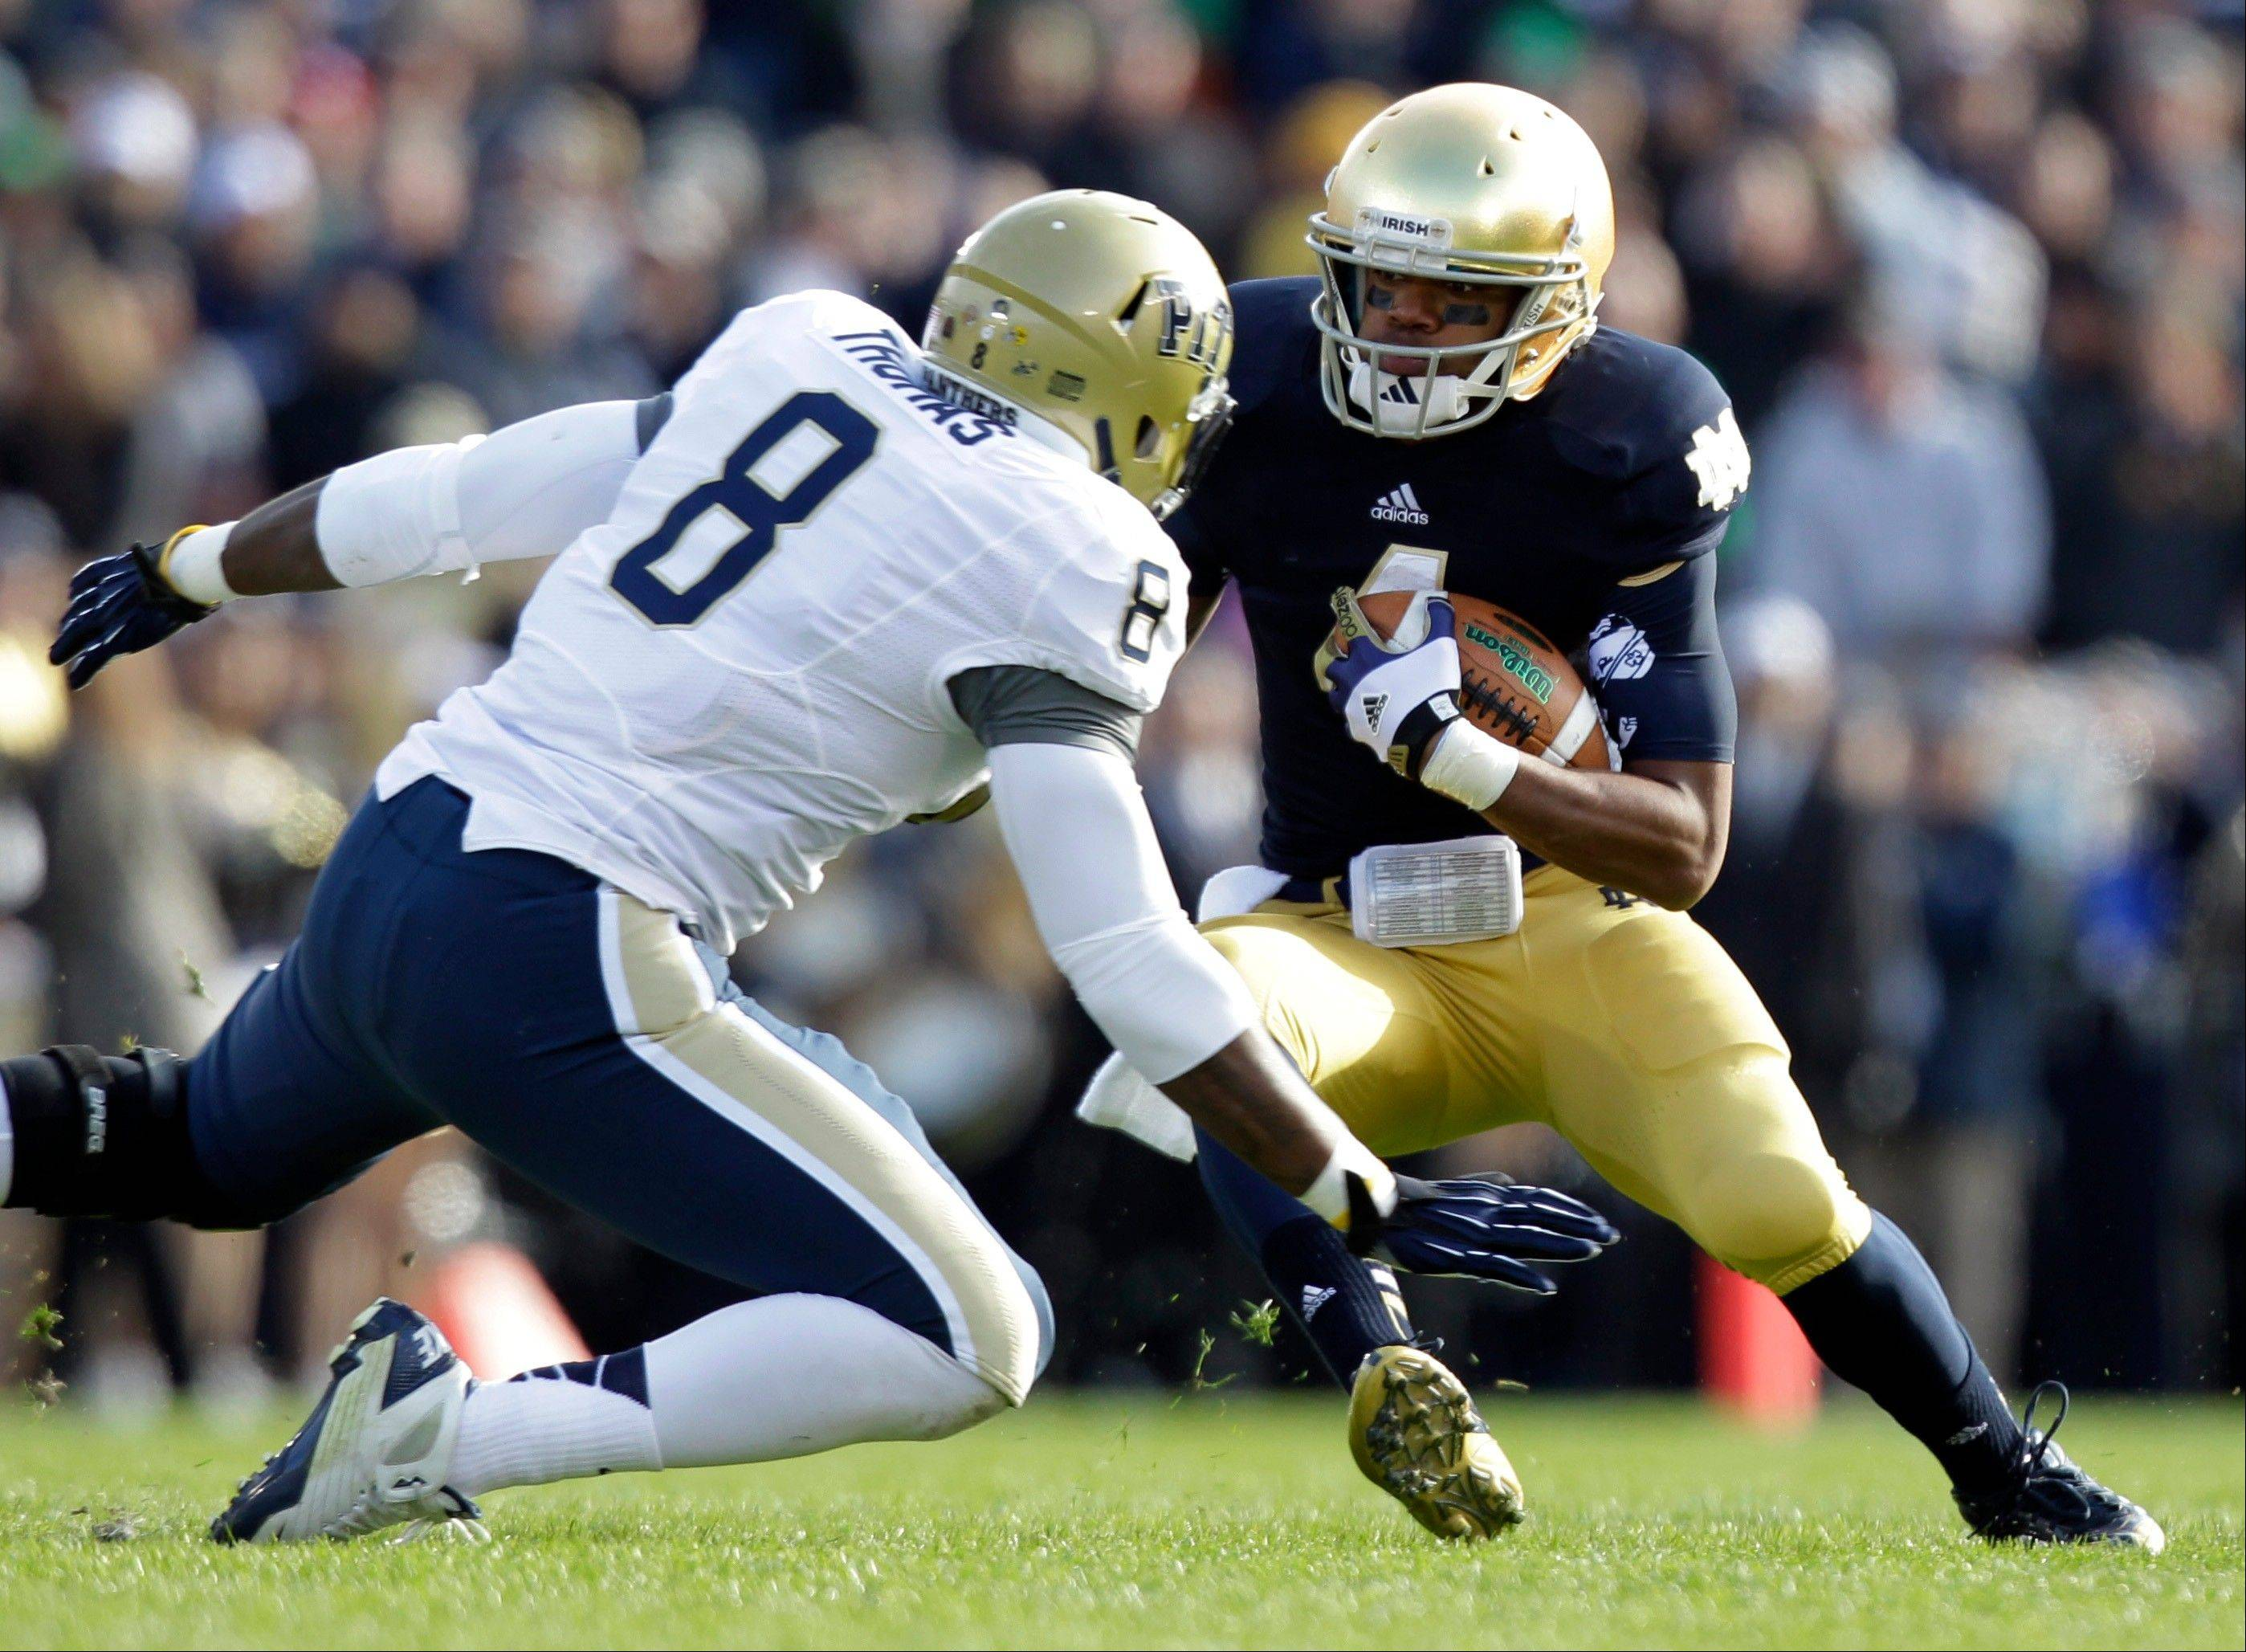 Notre Dame running back George Atkinson III, right, makes a move to get past Pittsburgh linebacker Todd Thomas during a game last season in South Bend, Ind.